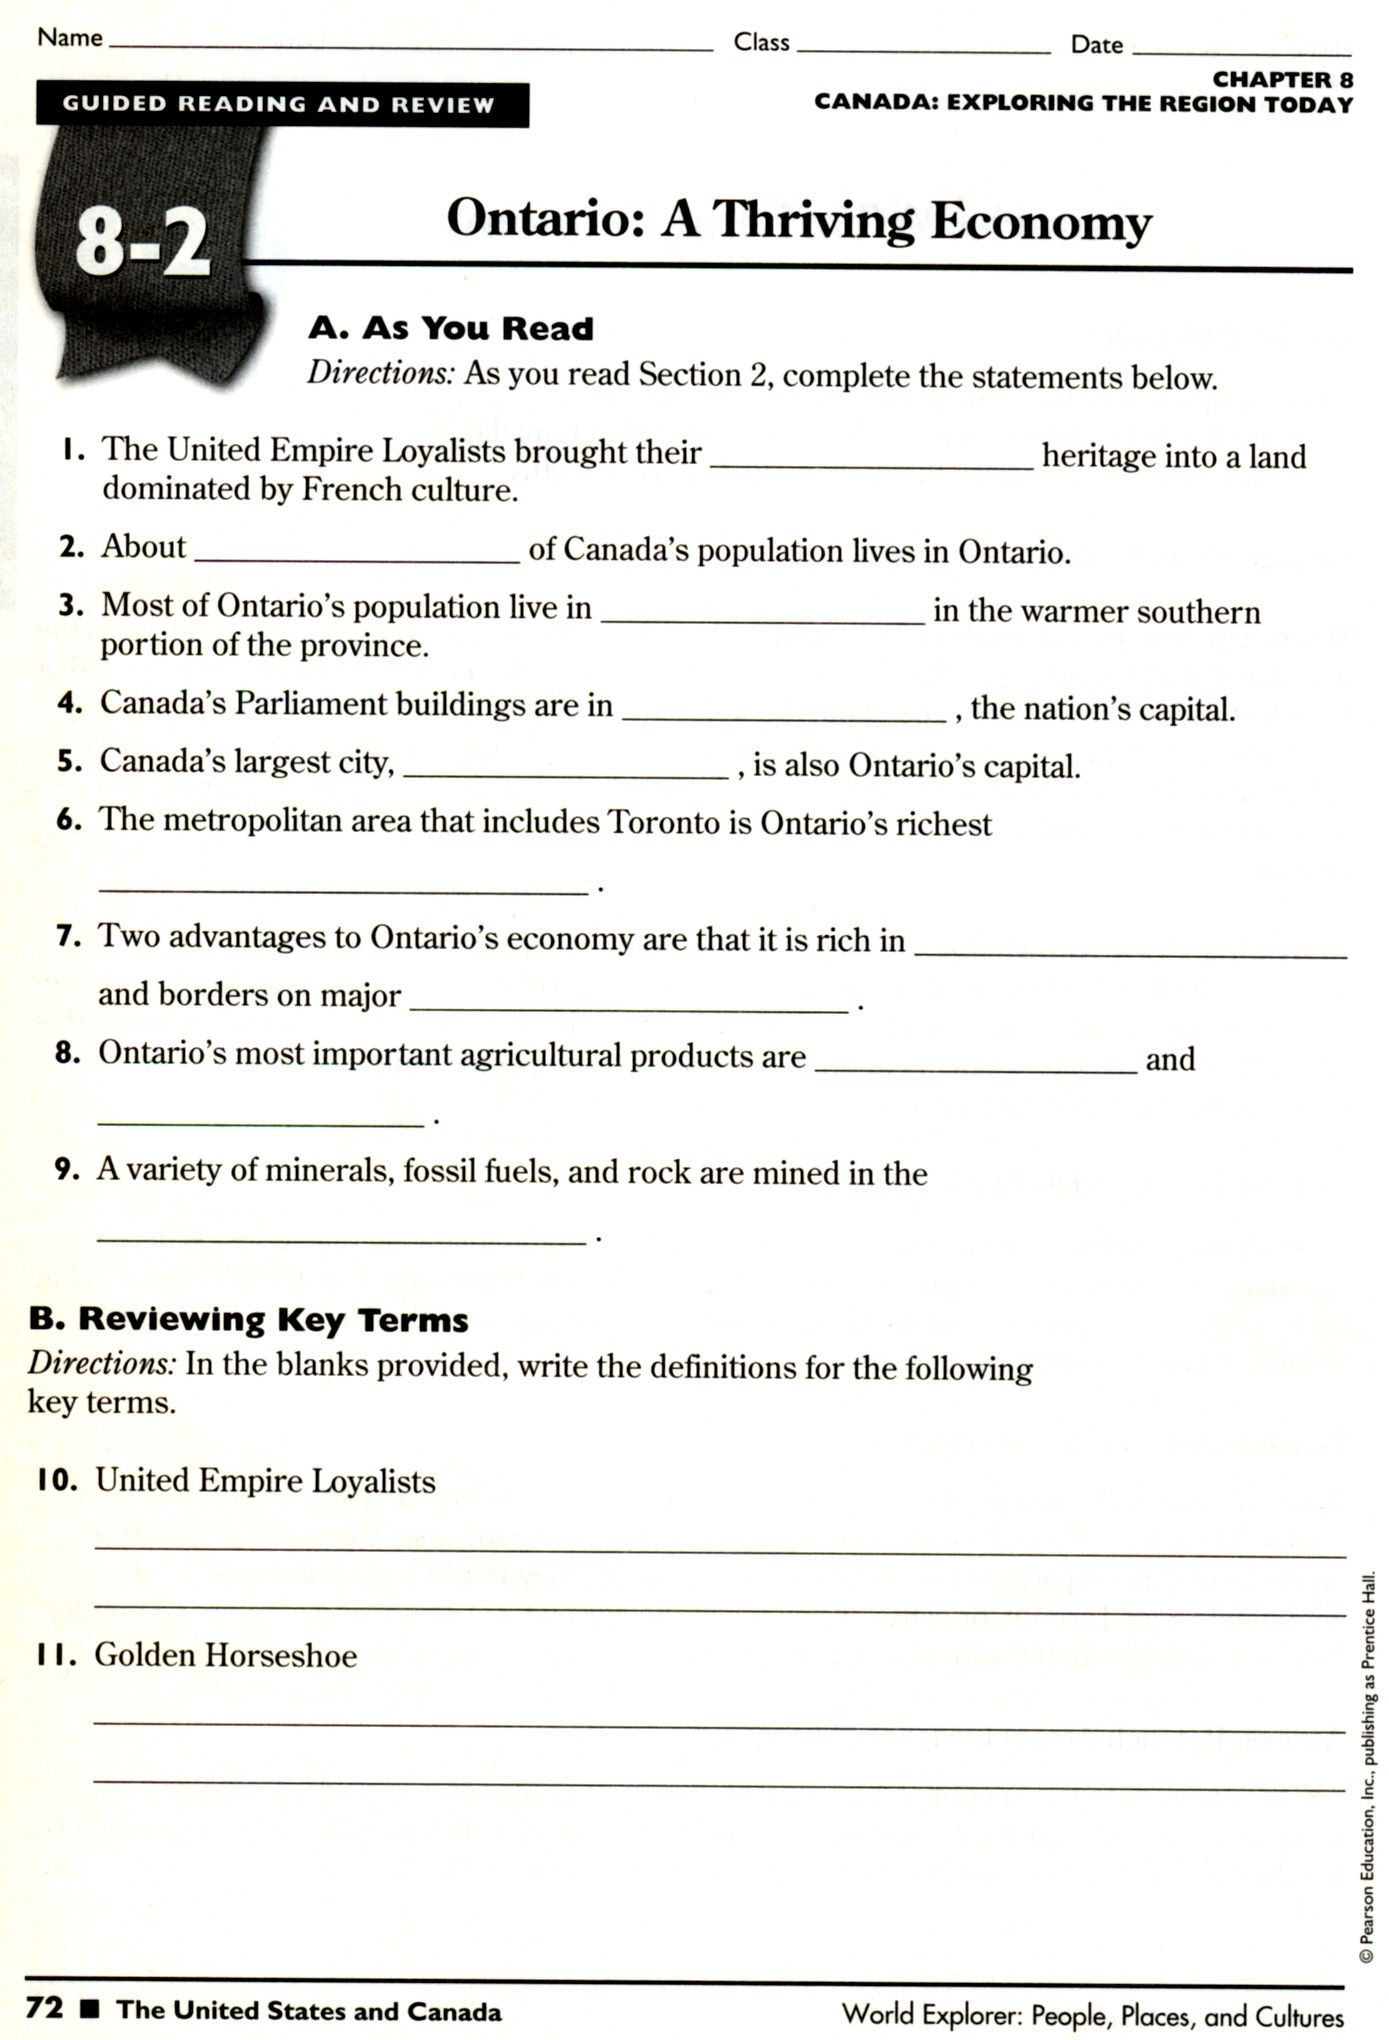 Social Studies Worksheets 7th Grade Physical Geography the United States and Canada Worksheet